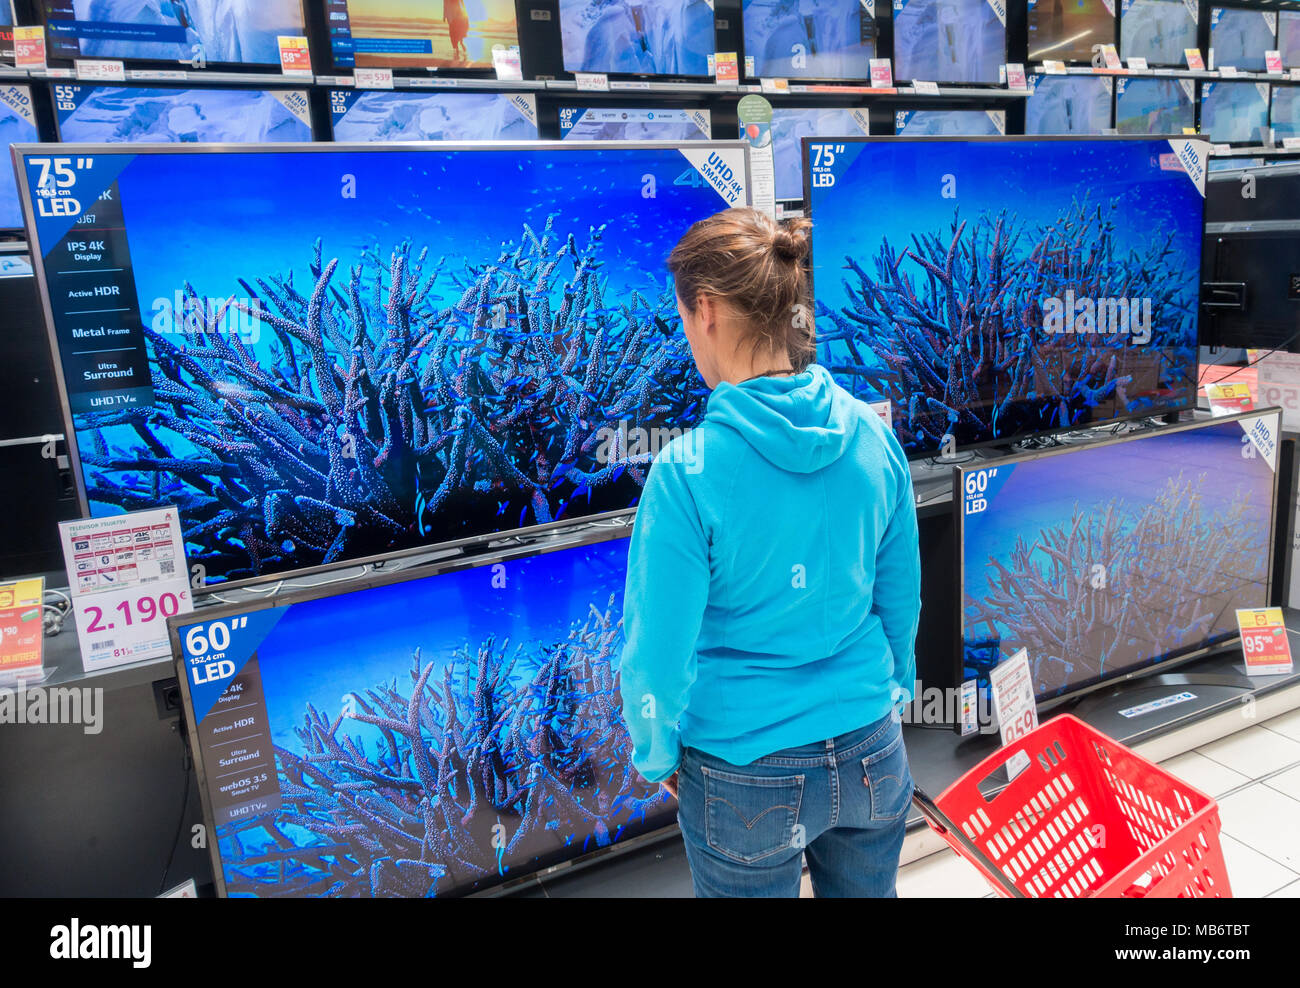 Woman looking at new High definition 4k TV screens in electrical store - Stock Image